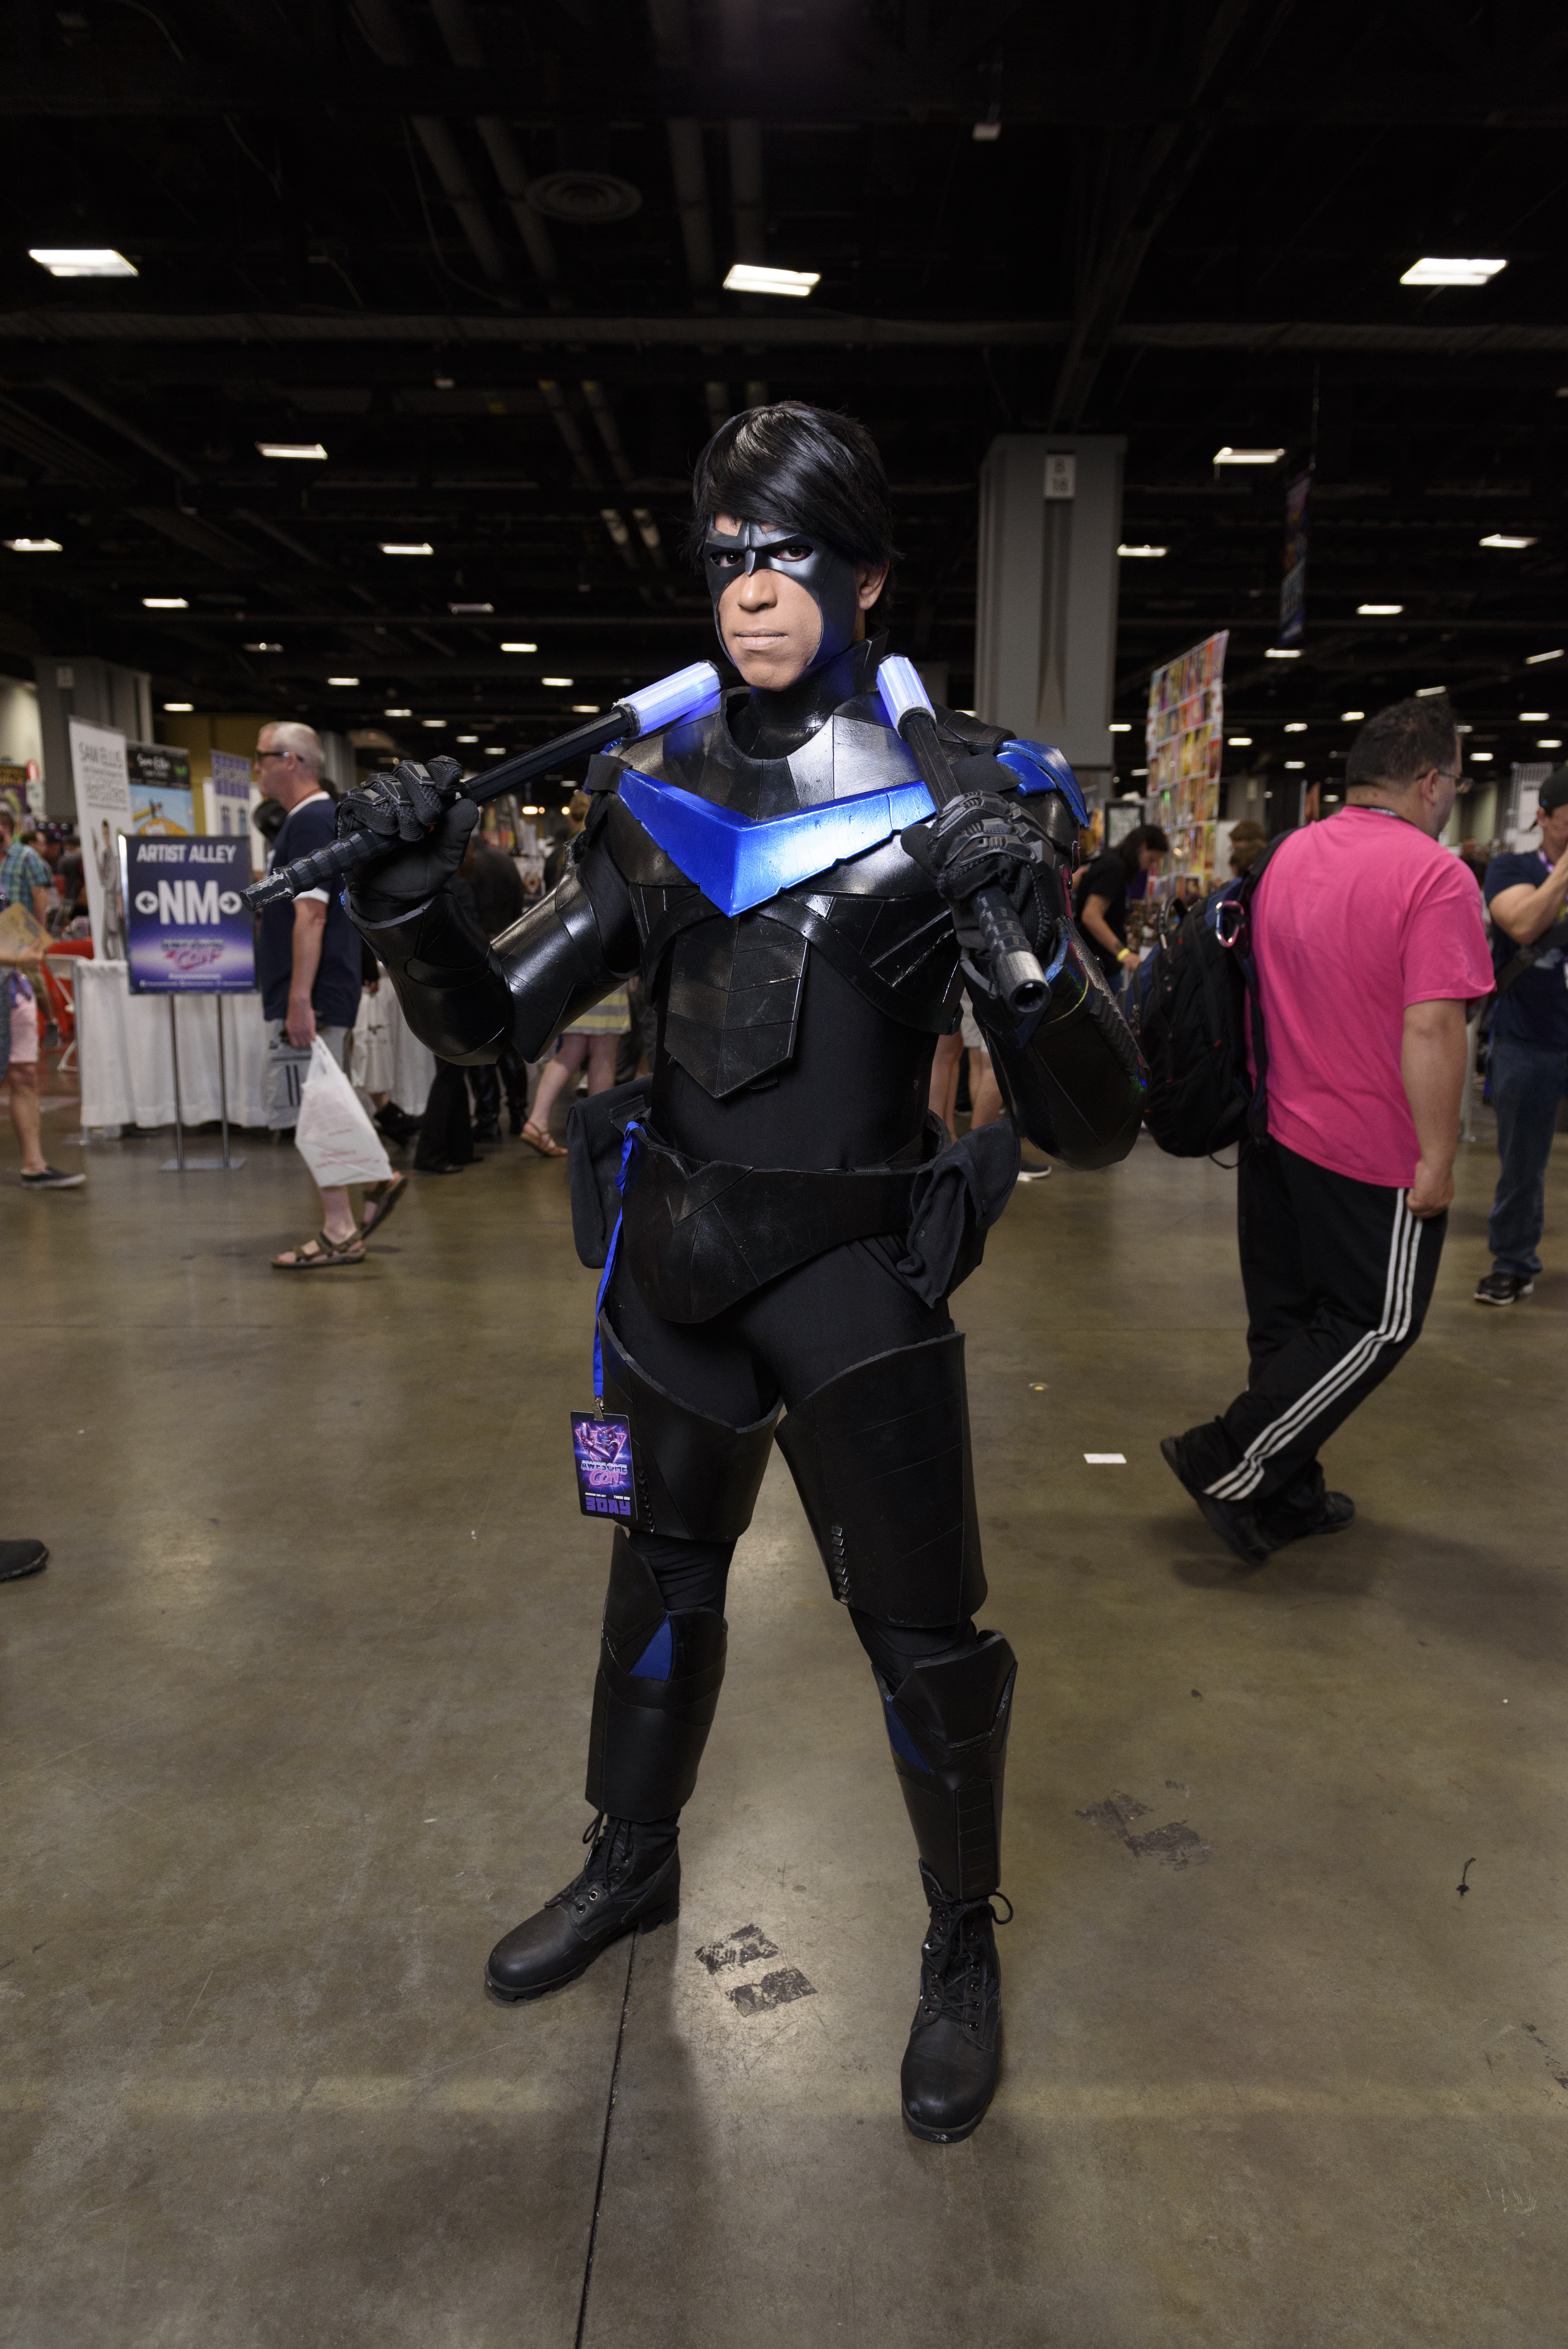 Nerds and geeks alike joined forces at Awesome Con, a three-day event celebrating all forms of pop culture, and just about all of them came in costume. Here are our favorite cosplays of 2017, from the funny to the extraordinary. (Image: Franz Mahr)